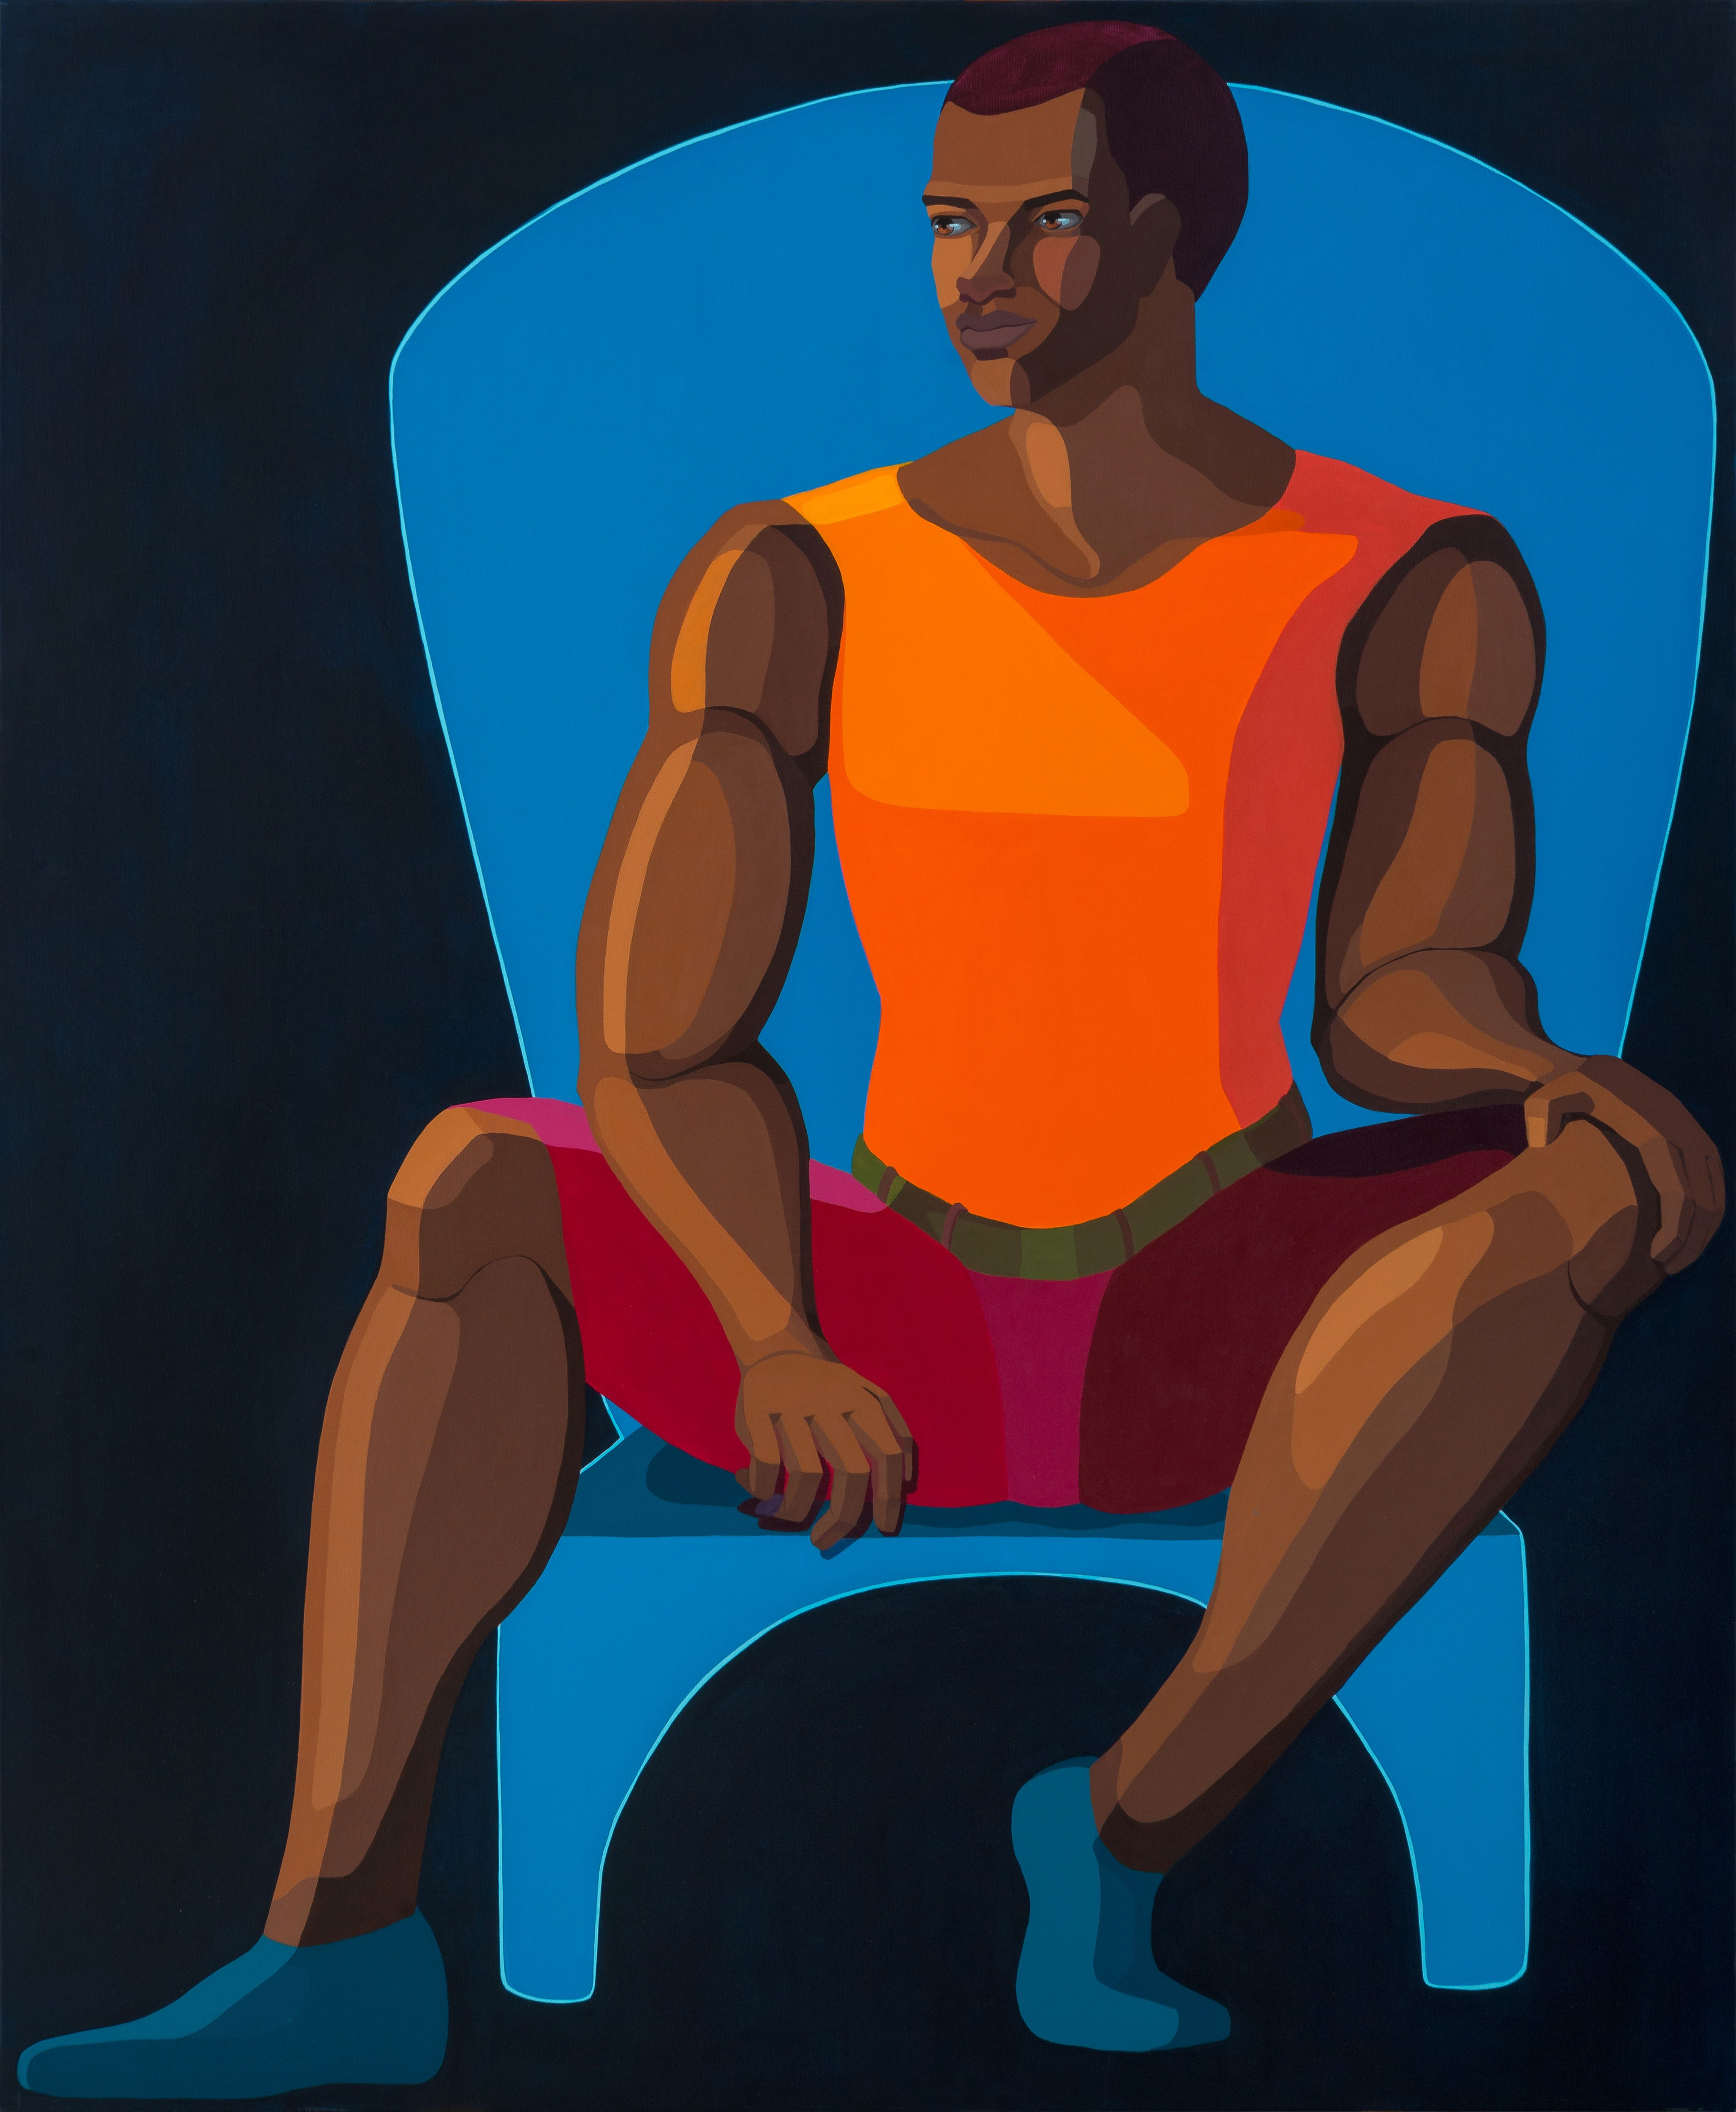 Nirit Takele's Young Man Sitting On Blue Chair (2021)